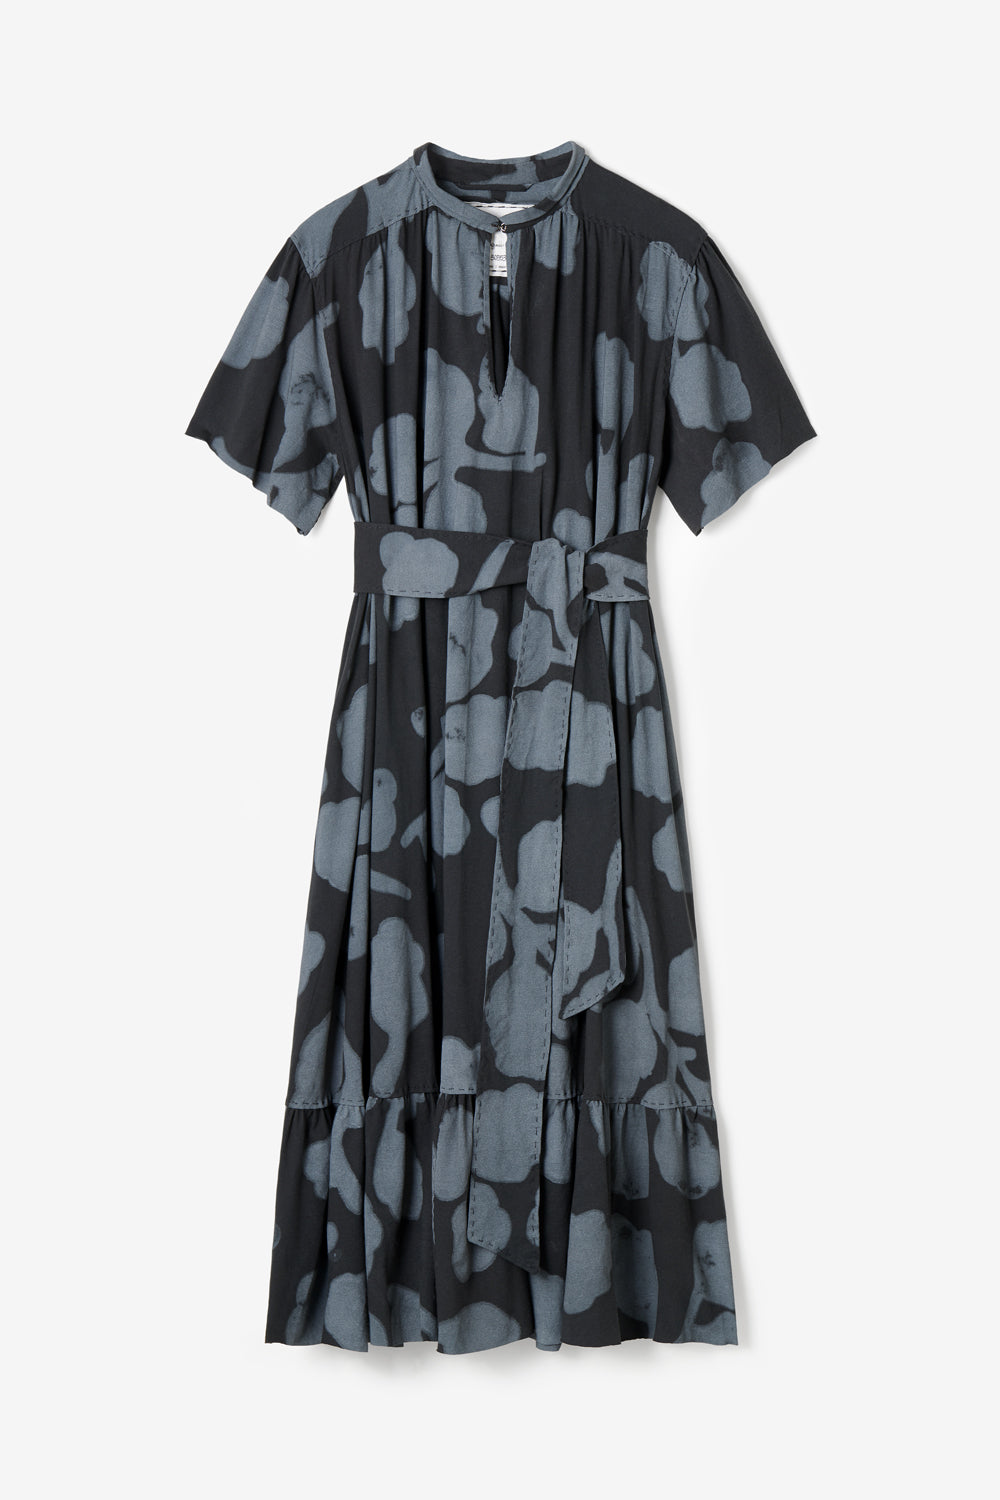 Alabama Chanin Organic Summer Dress The Ines Dress in Hand-Painted Black Leaves Print